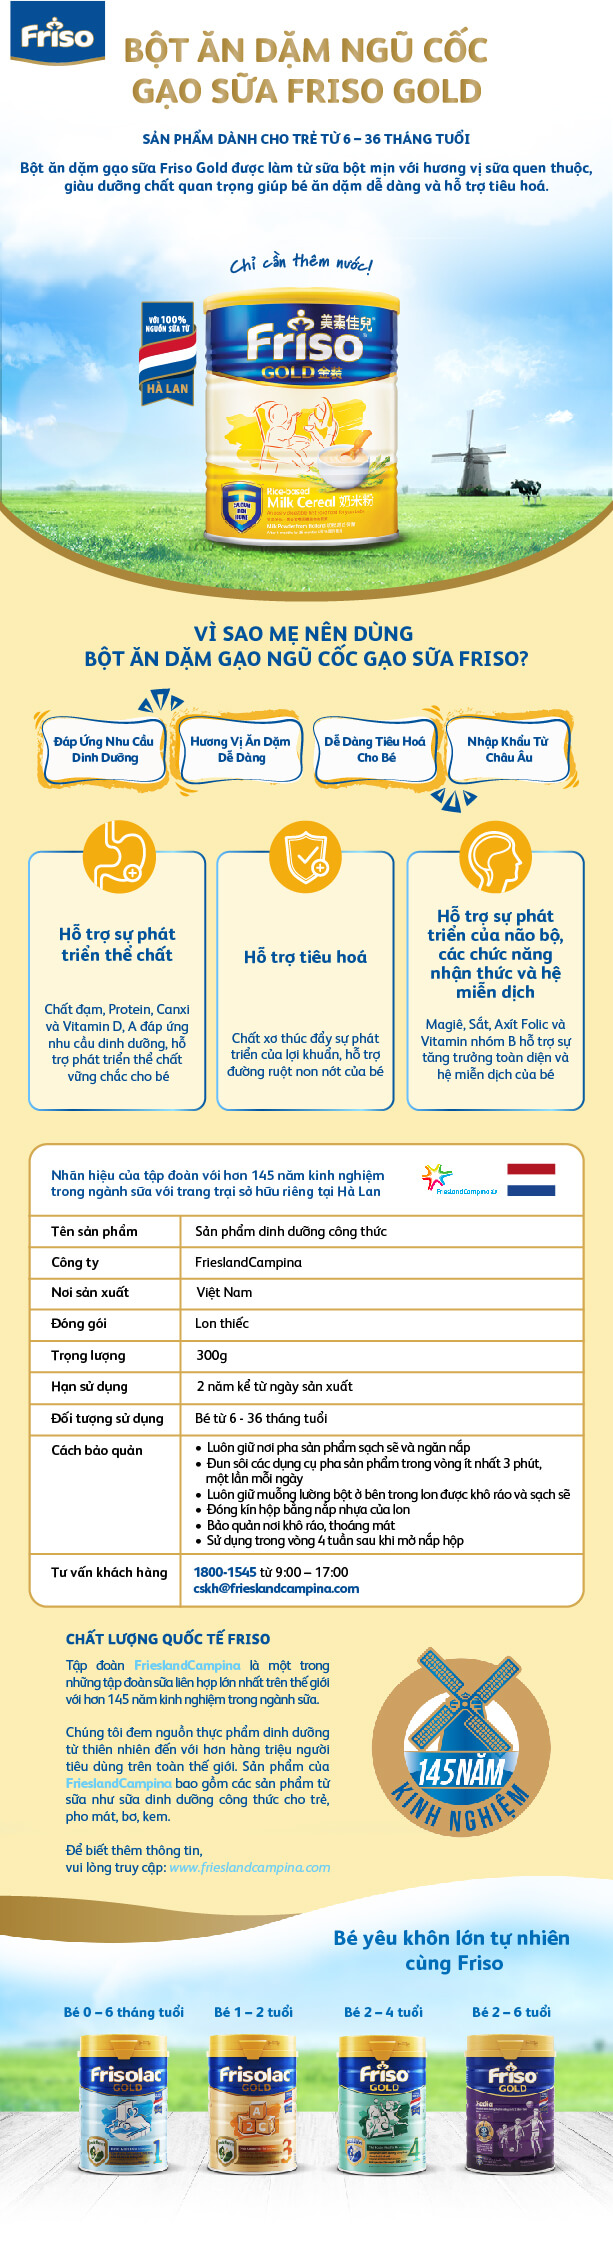 0206_Friso_Infographic_Tiki_Cereal-01